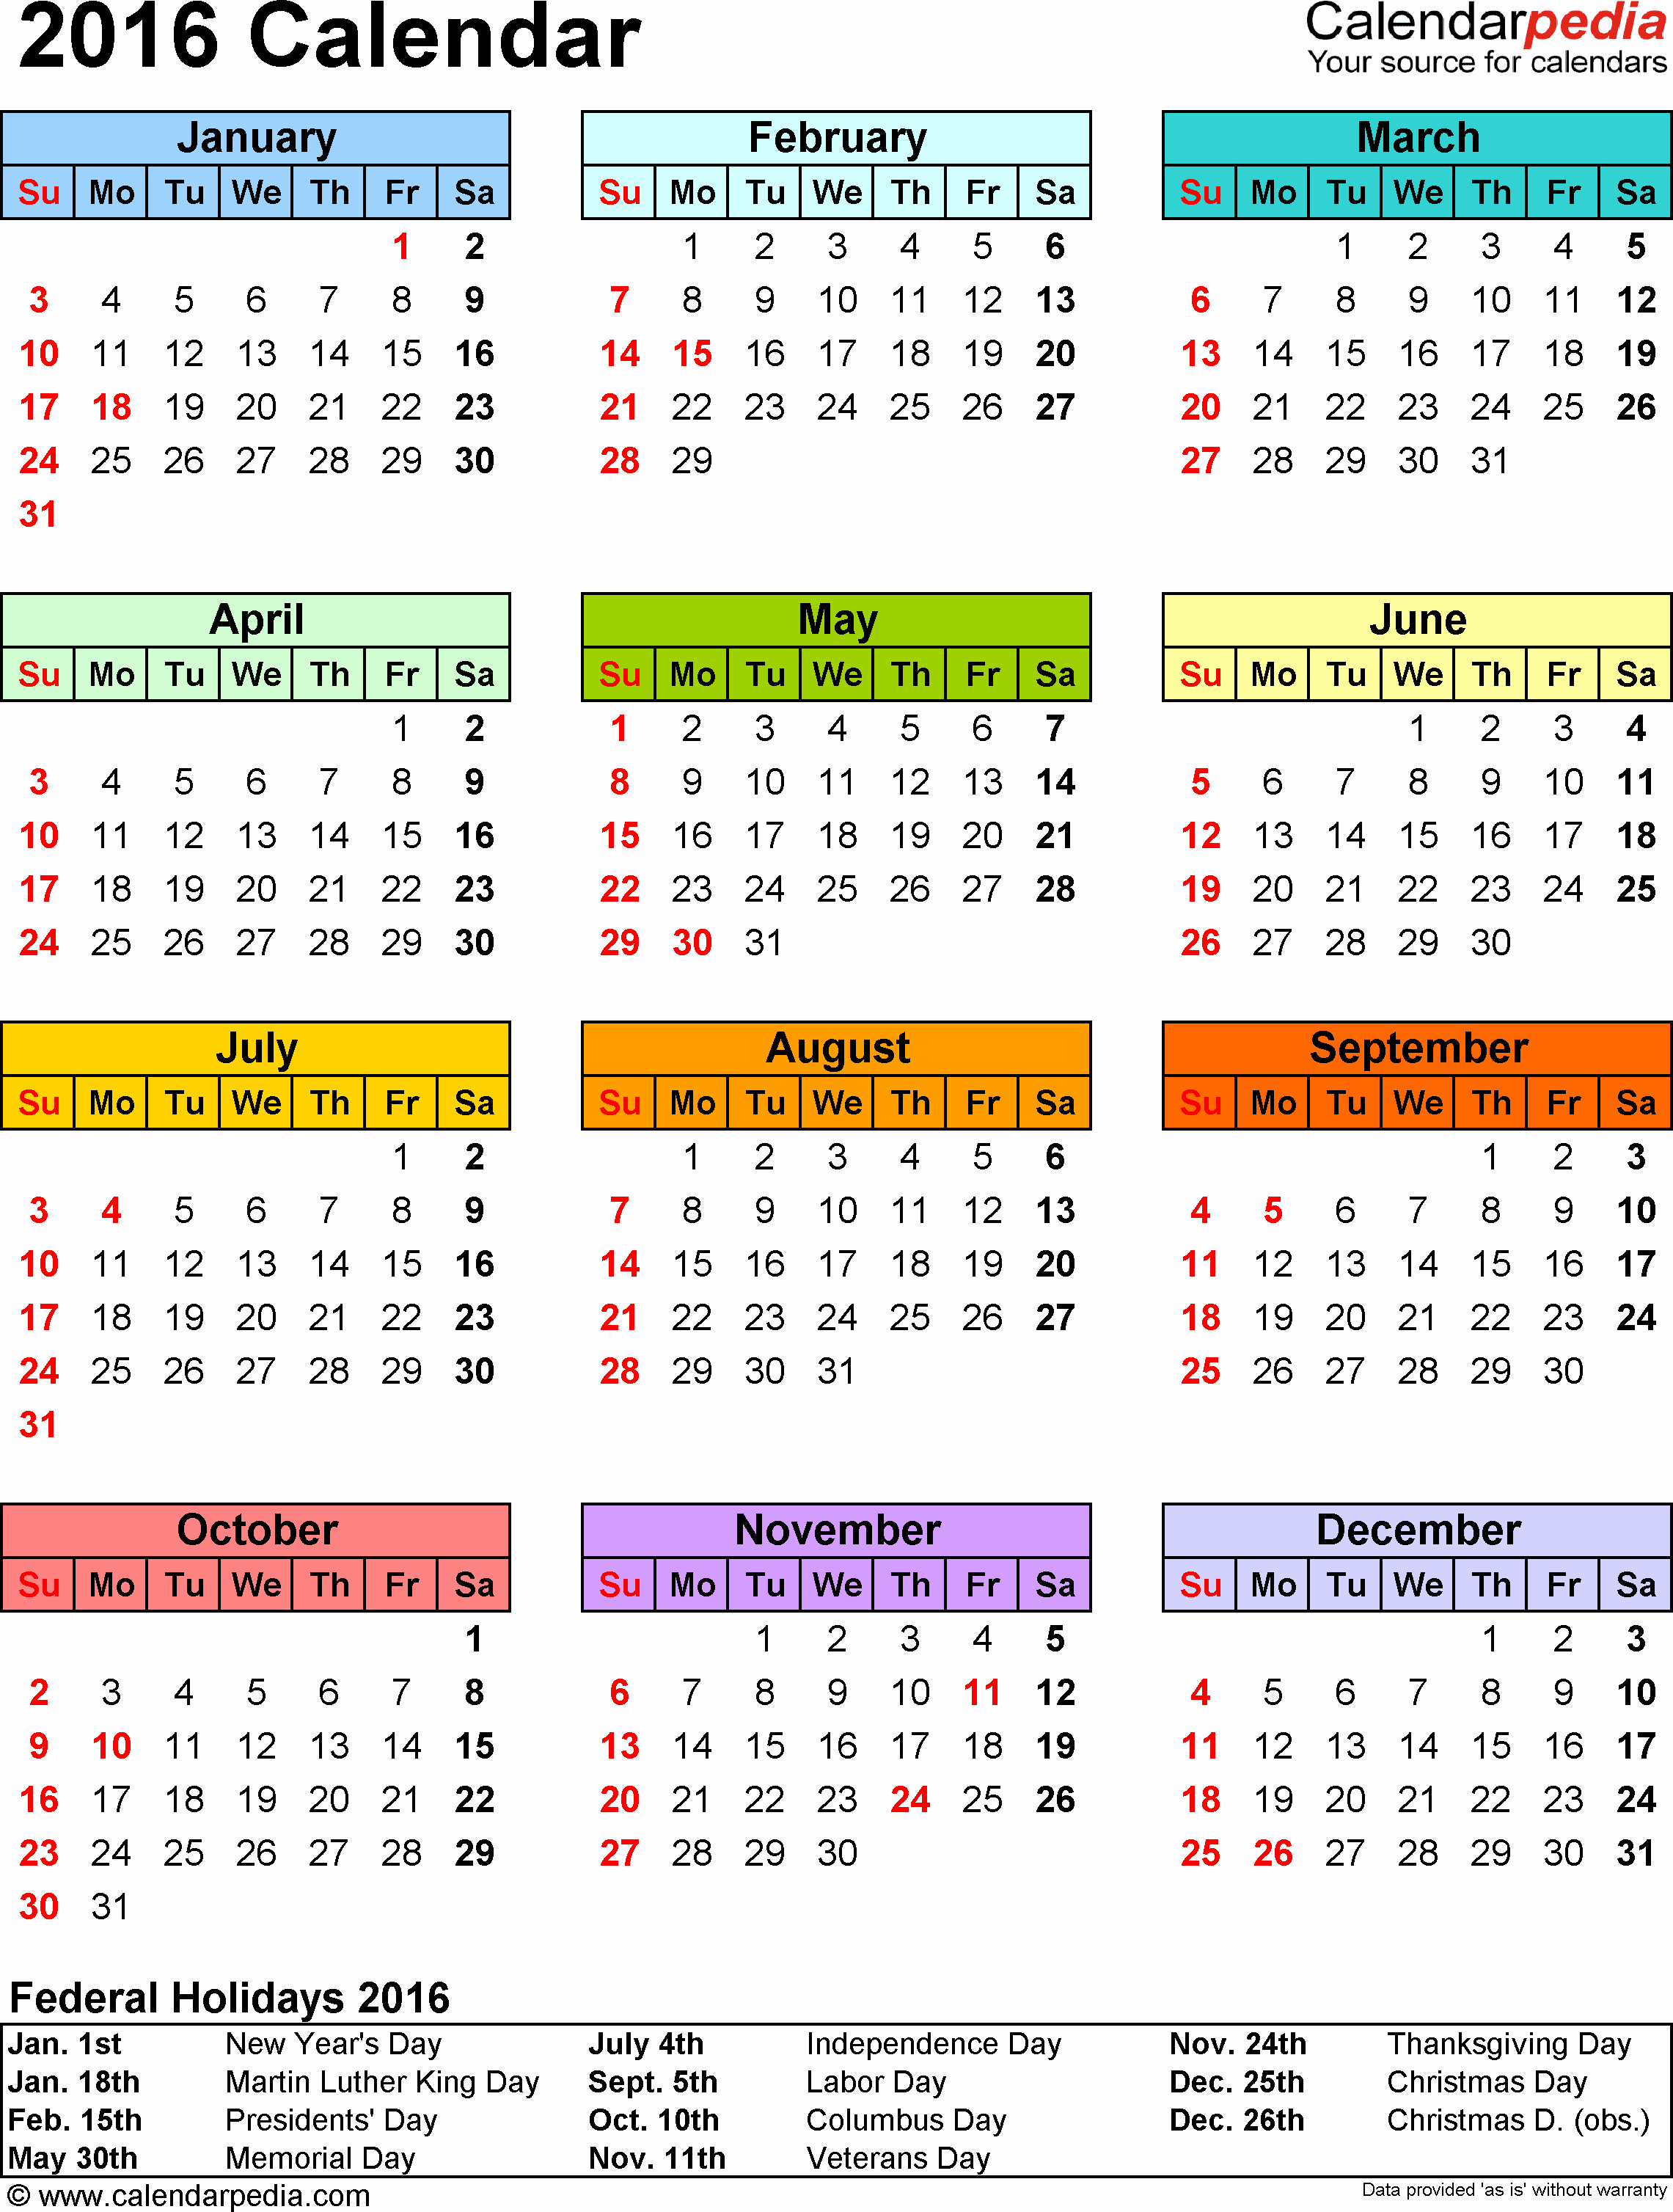 Calendar 2016 Printable with Holidays Awesome 2016 Calendar with Federal Holidays & Excel Pdf Word Templates